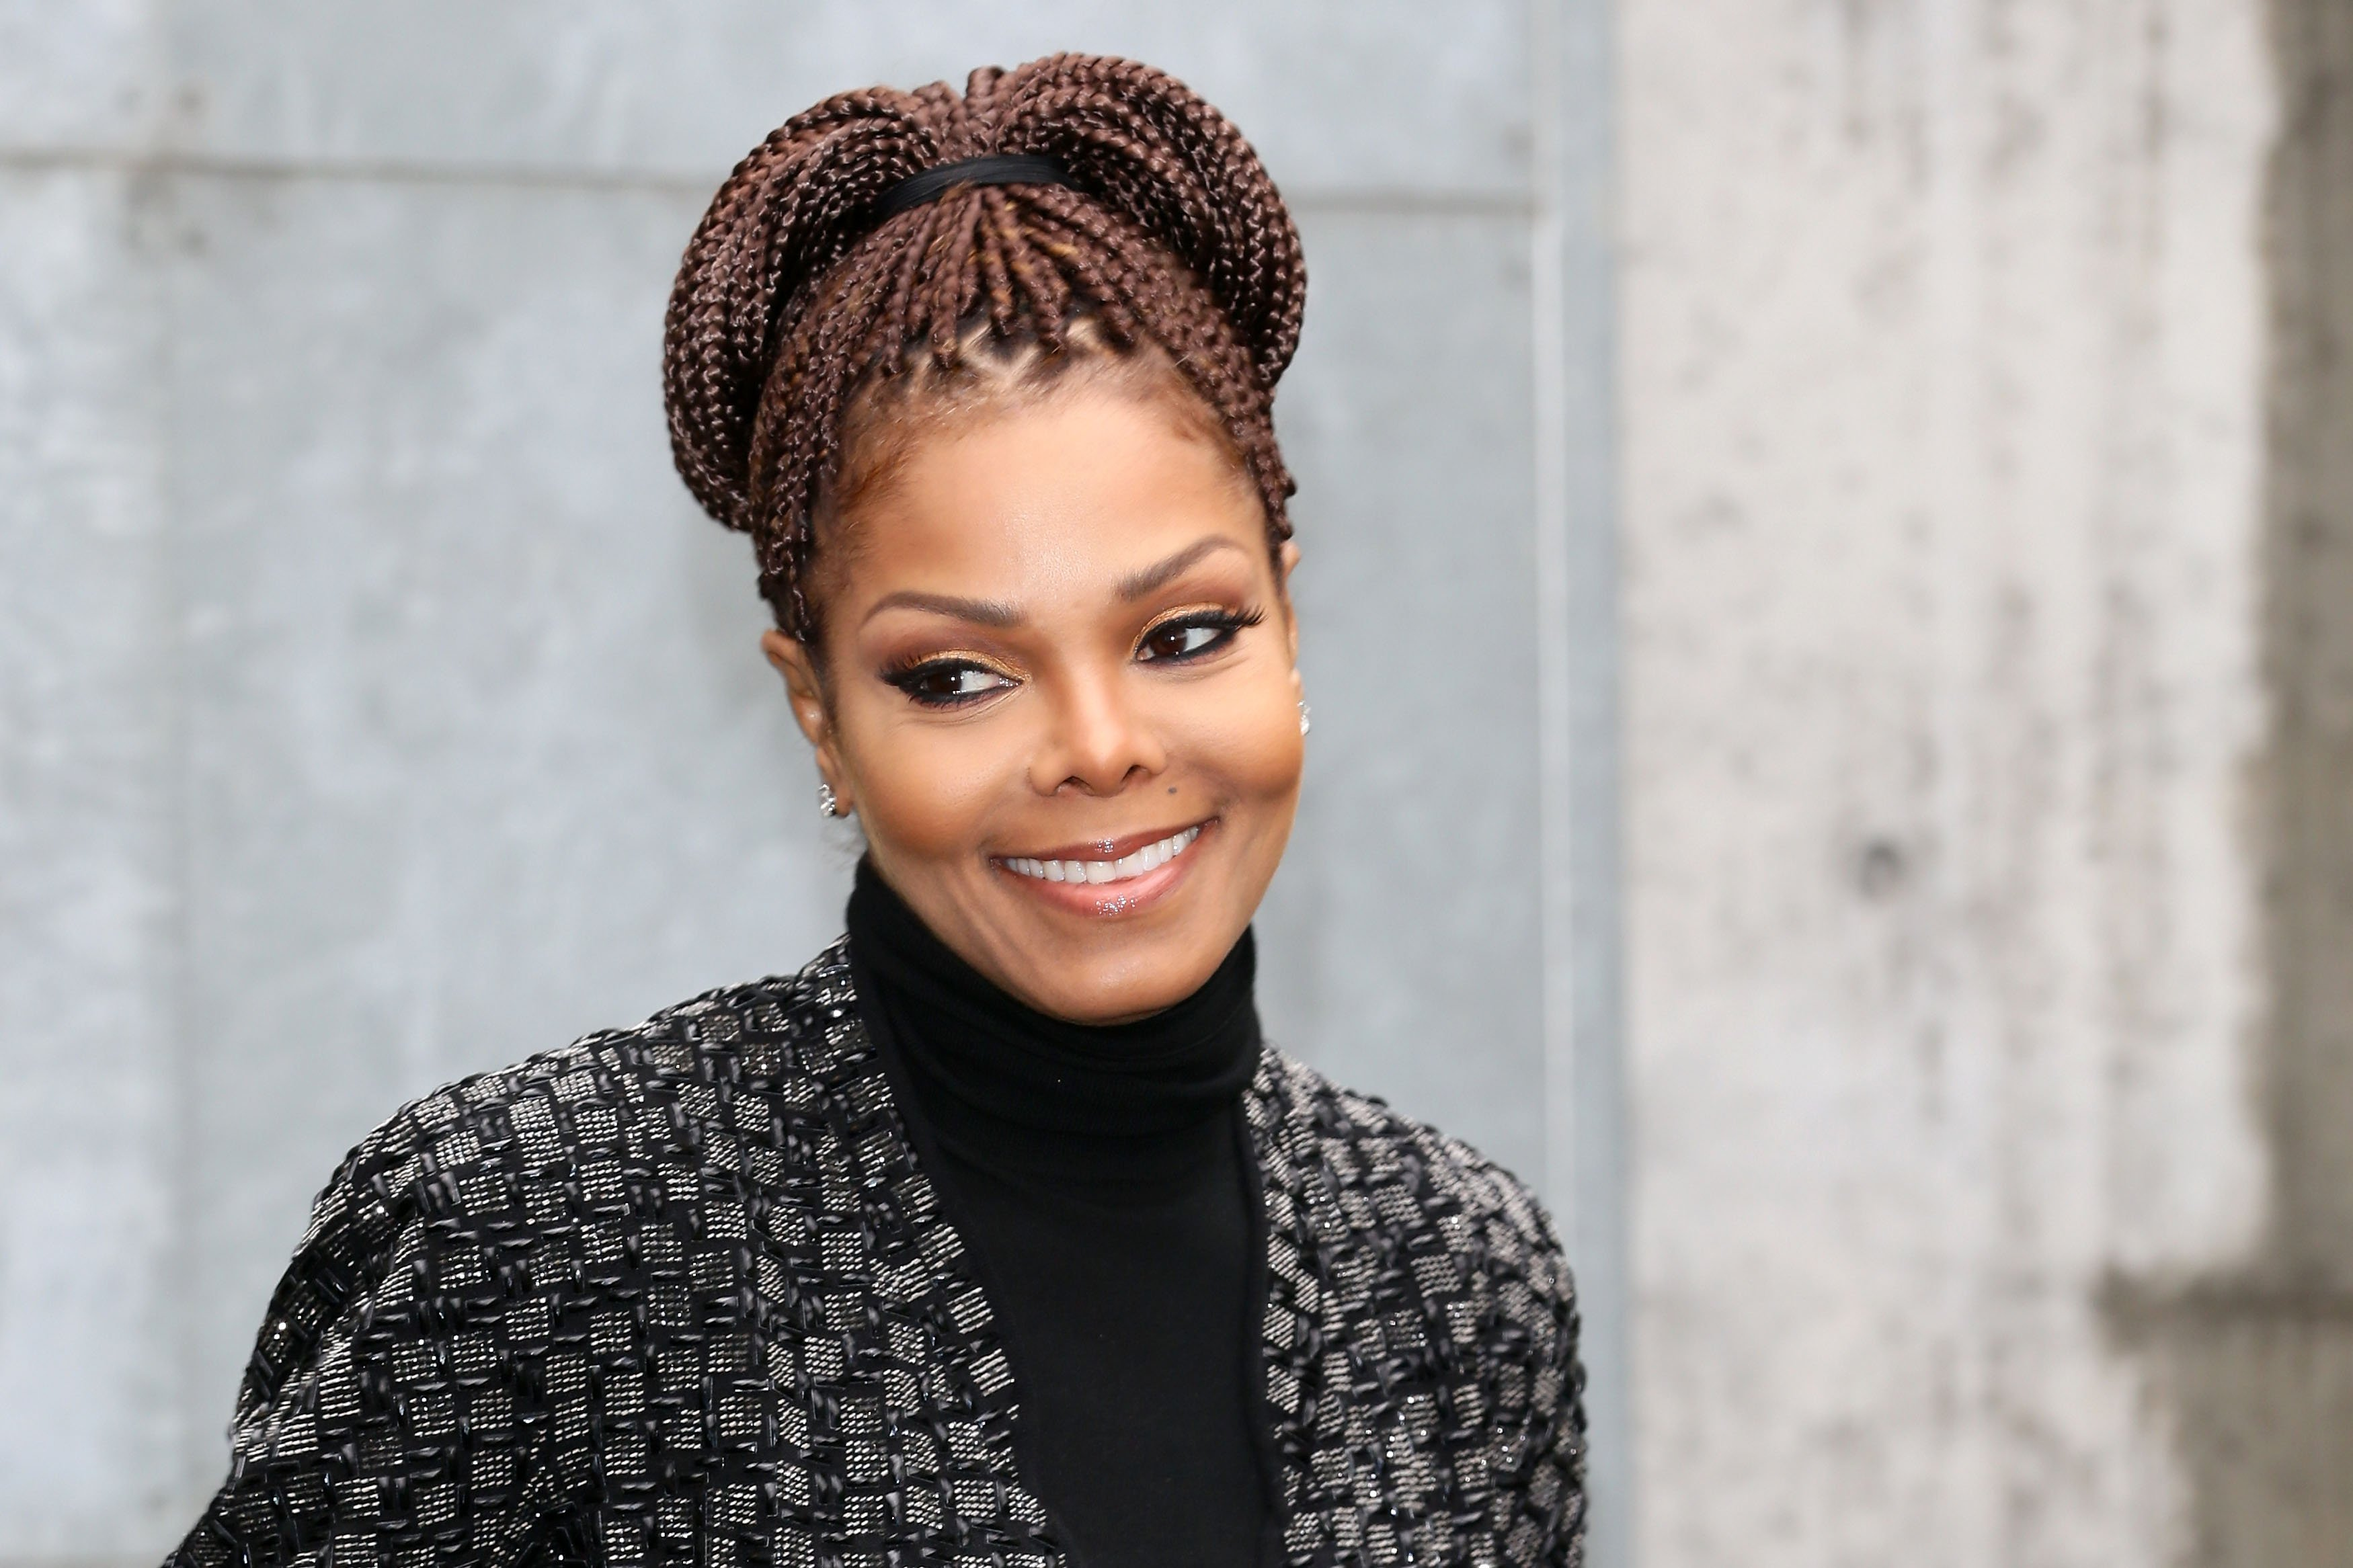 Janet Jackson at the Giorgio Armani fashion show in Milan, Italy on Feb. 25, 2014. |Photo: Getty Images